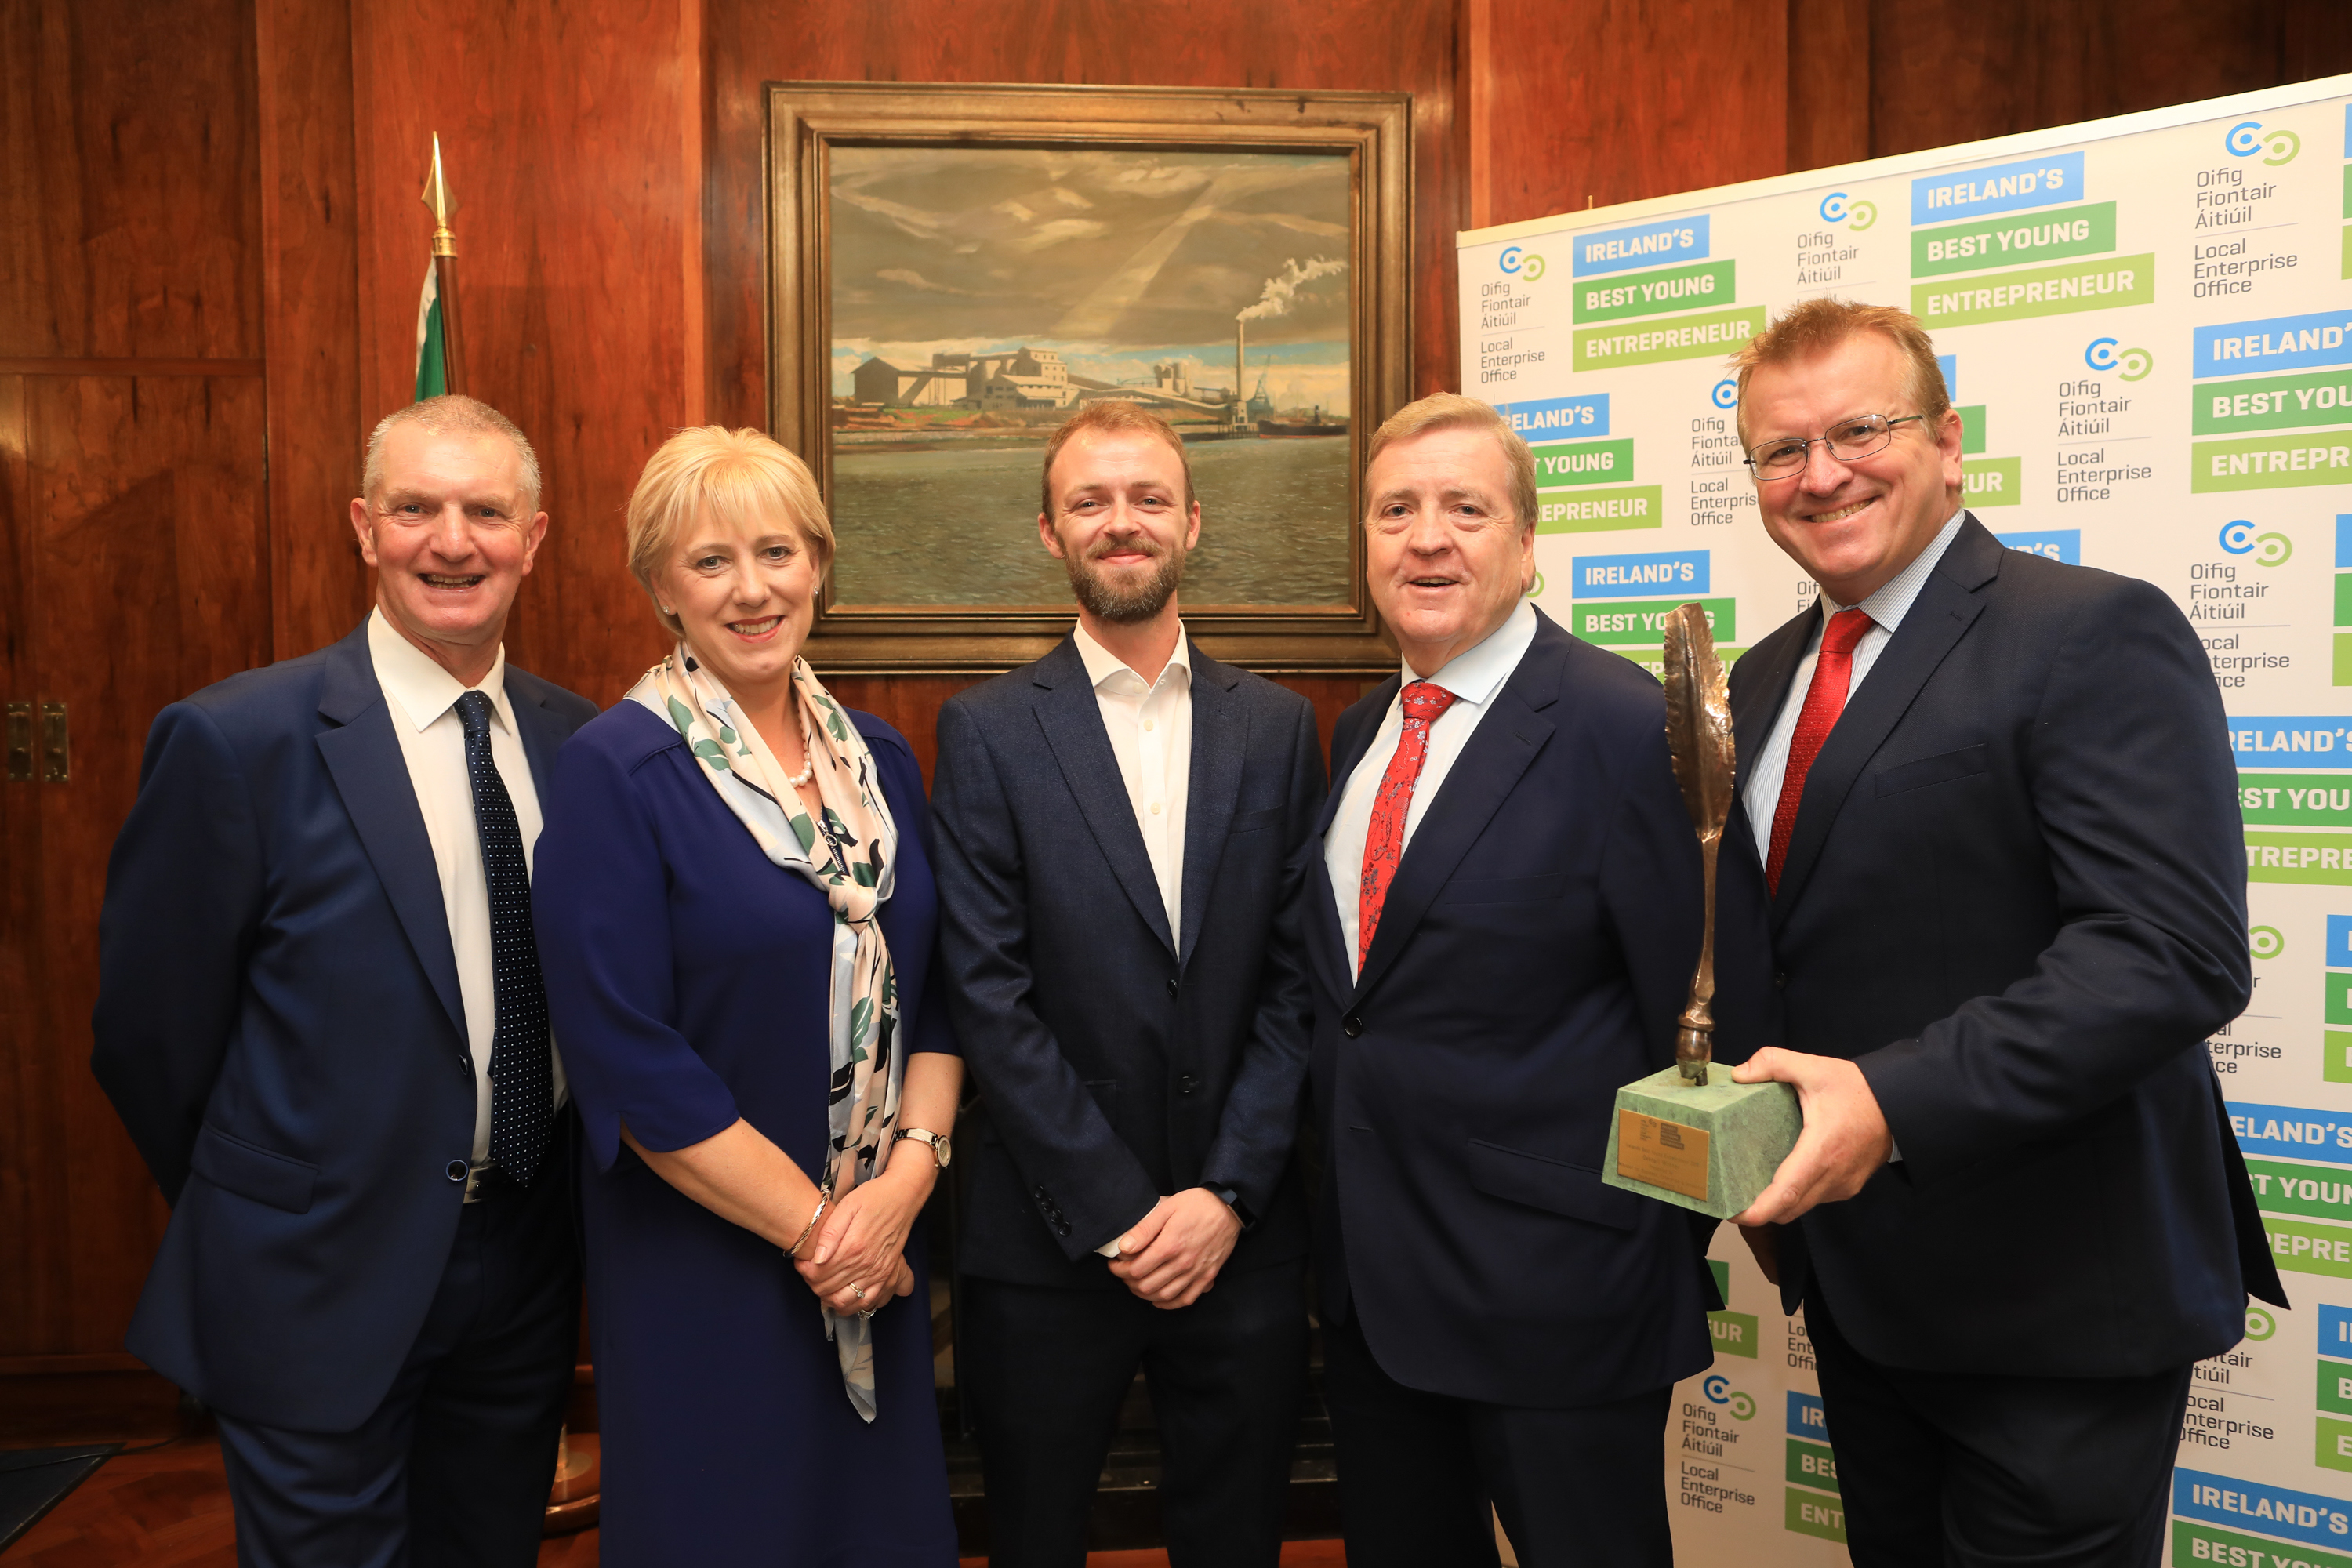 All IBYE Finalists